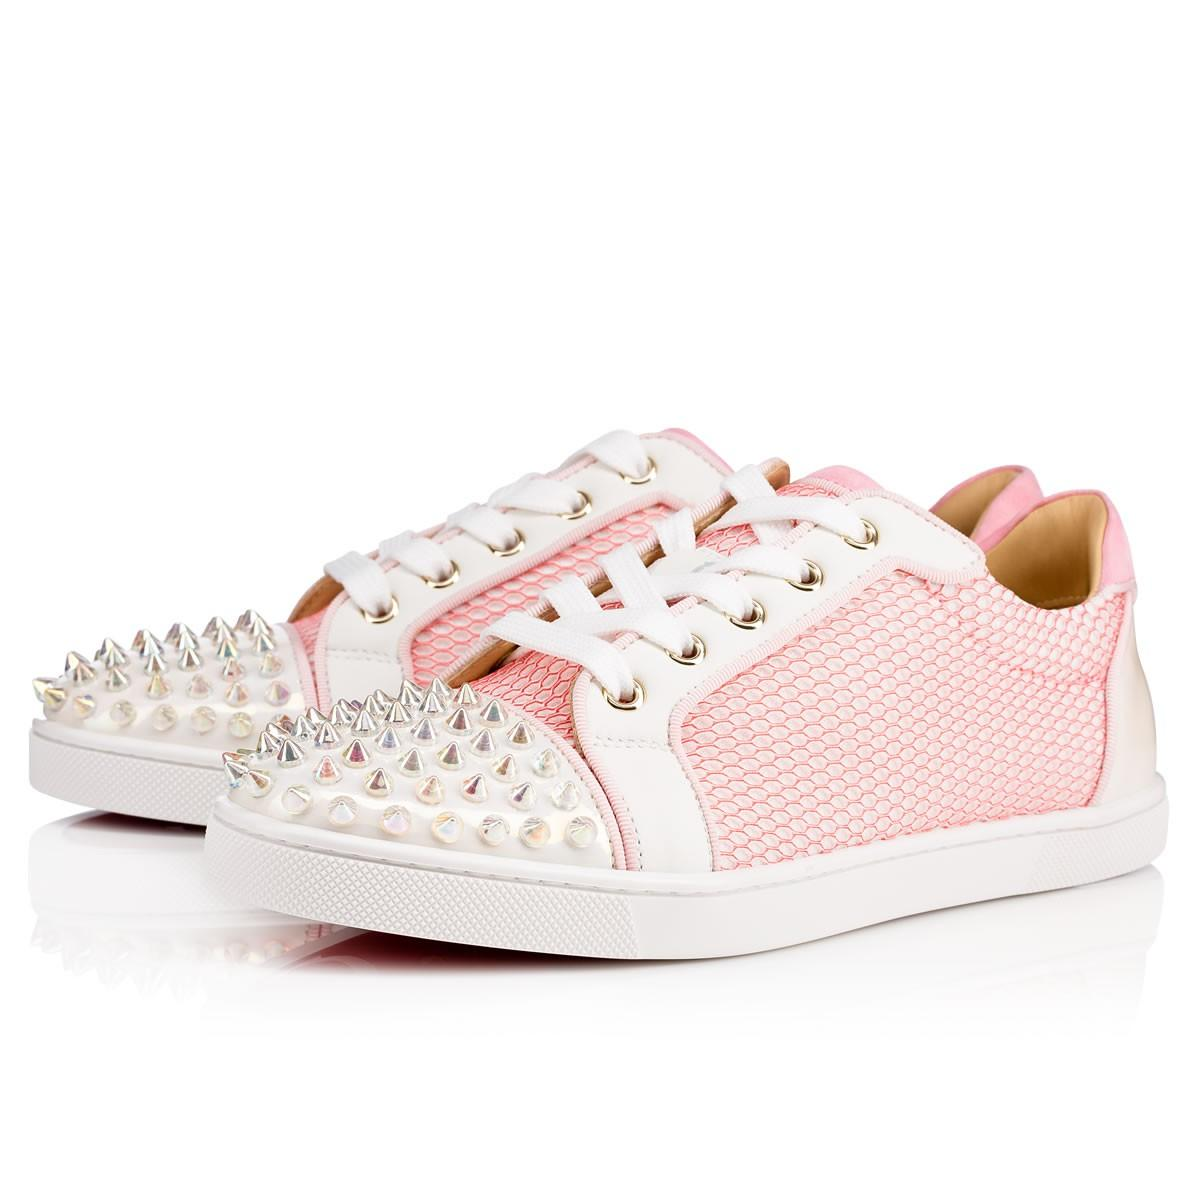 shop offer cheap online Christian Louboutin Studded Mesh Sneakers store online free shipping comfortable largest supplier sale online cheap sale new styles 4w1nlu